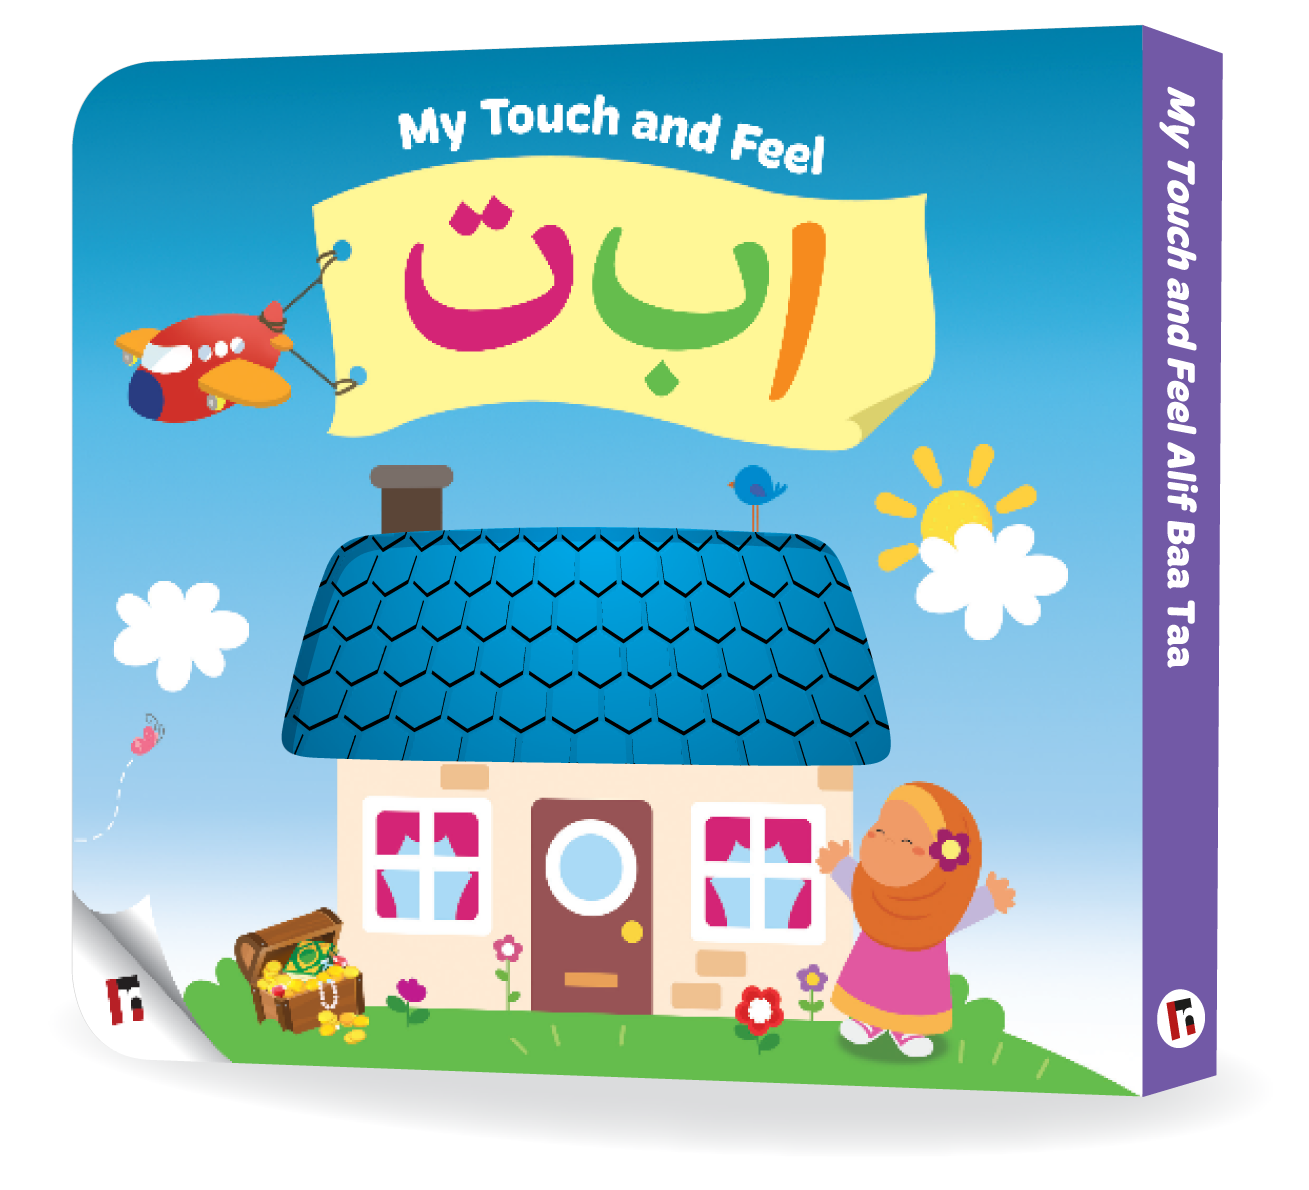 My Touch and Feel Cover.png